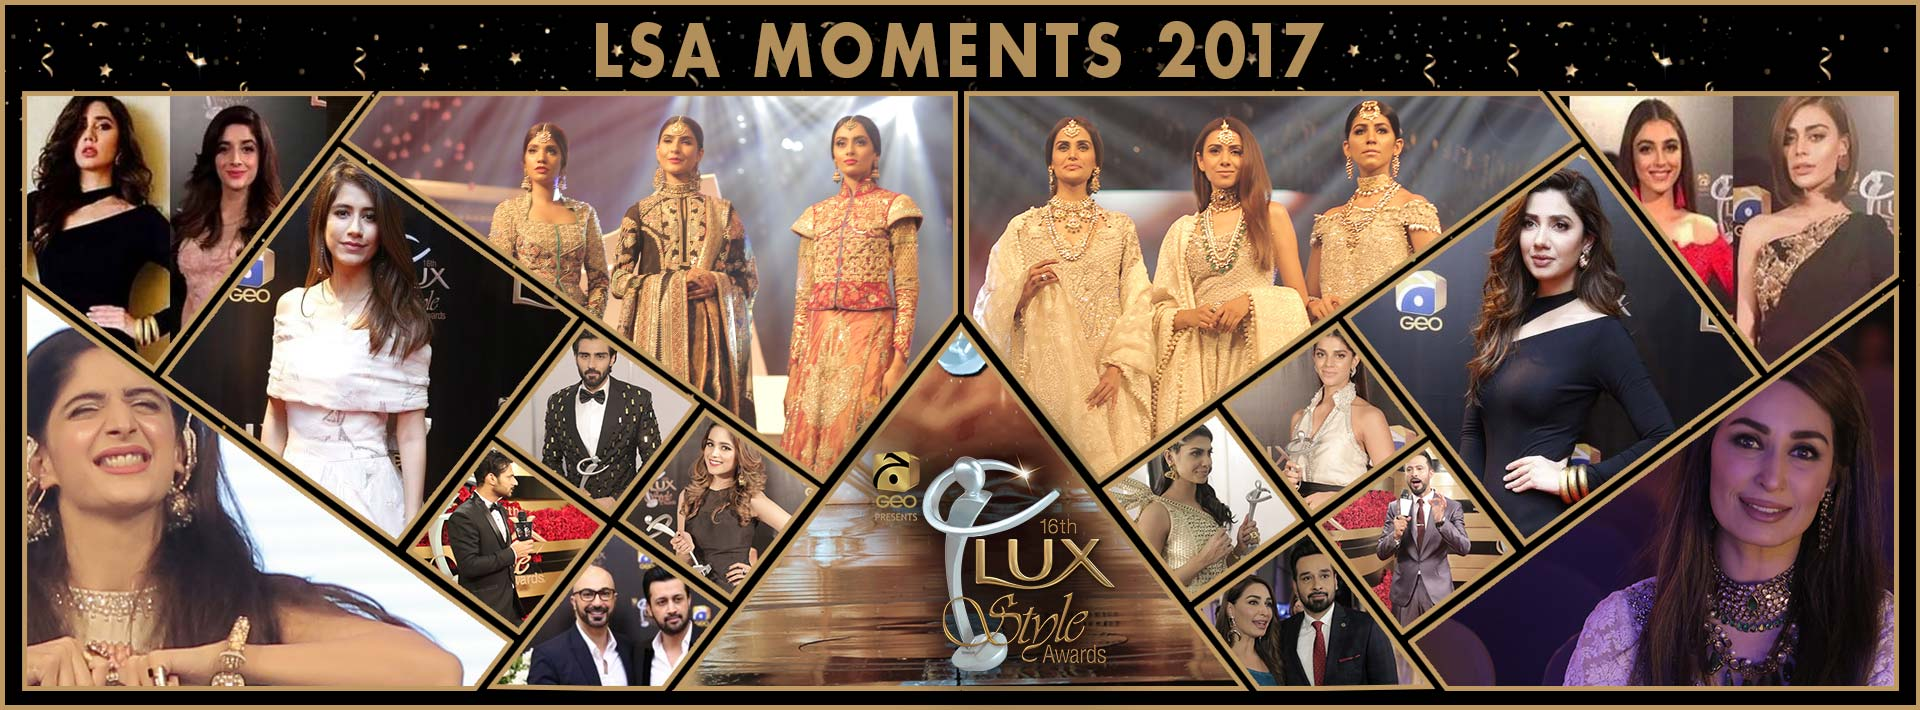 LSA-Moments-2017-Home-Bannner